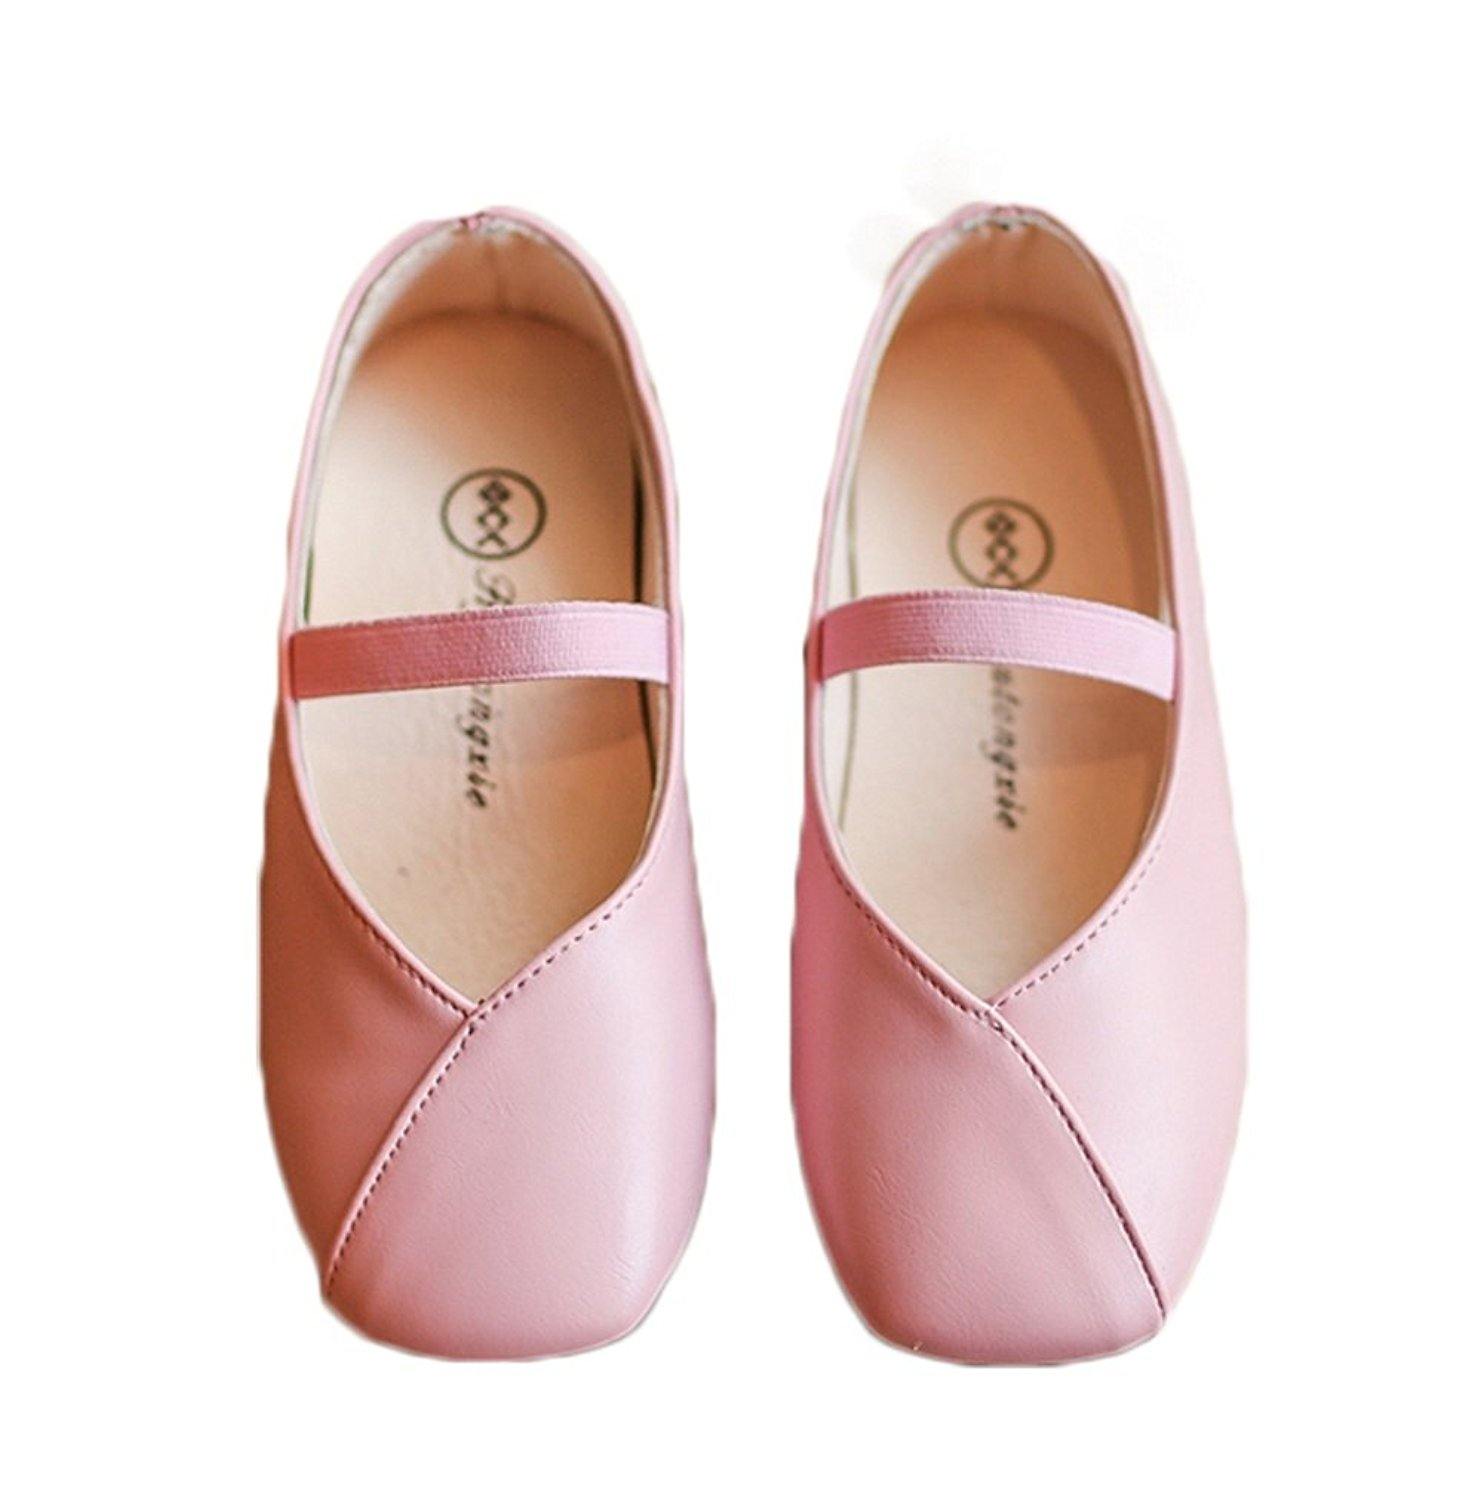 Bakerdani 2017 Style Fashion Autumn Girls Princess Dance Shoes Soft Soles Low-cut Uppers